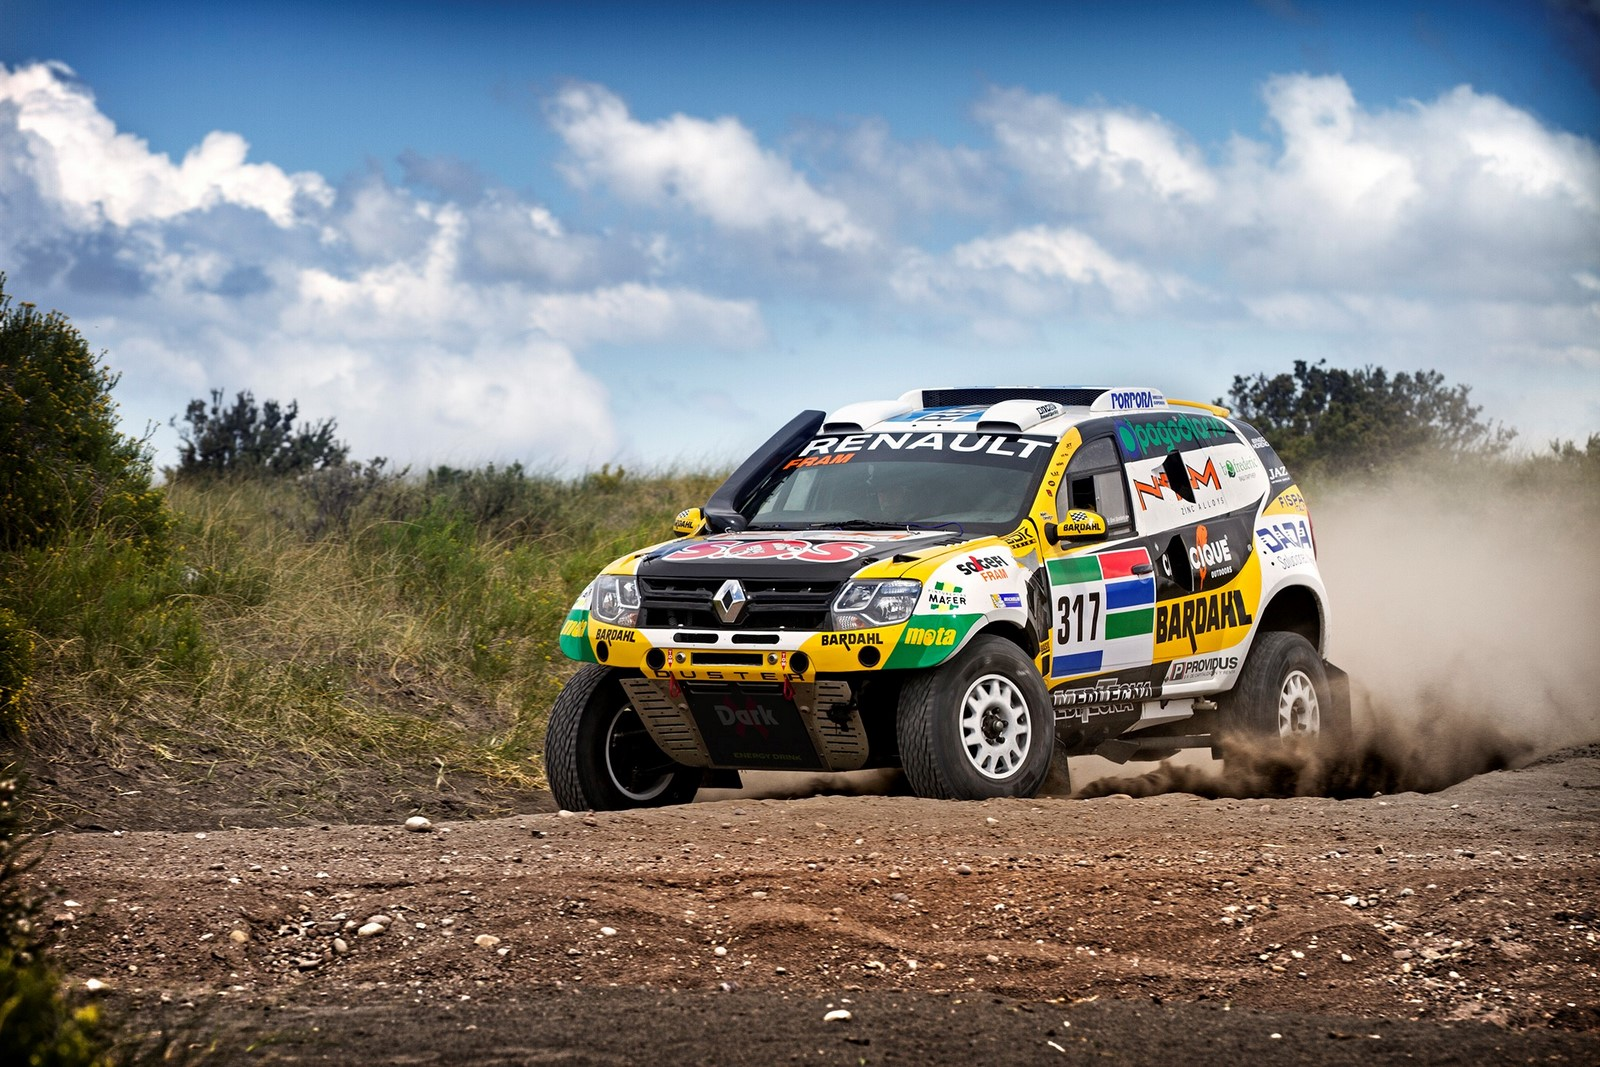 Renault-will-compete-in-the-2016-Rally-Dakar-with-a-Duster-1